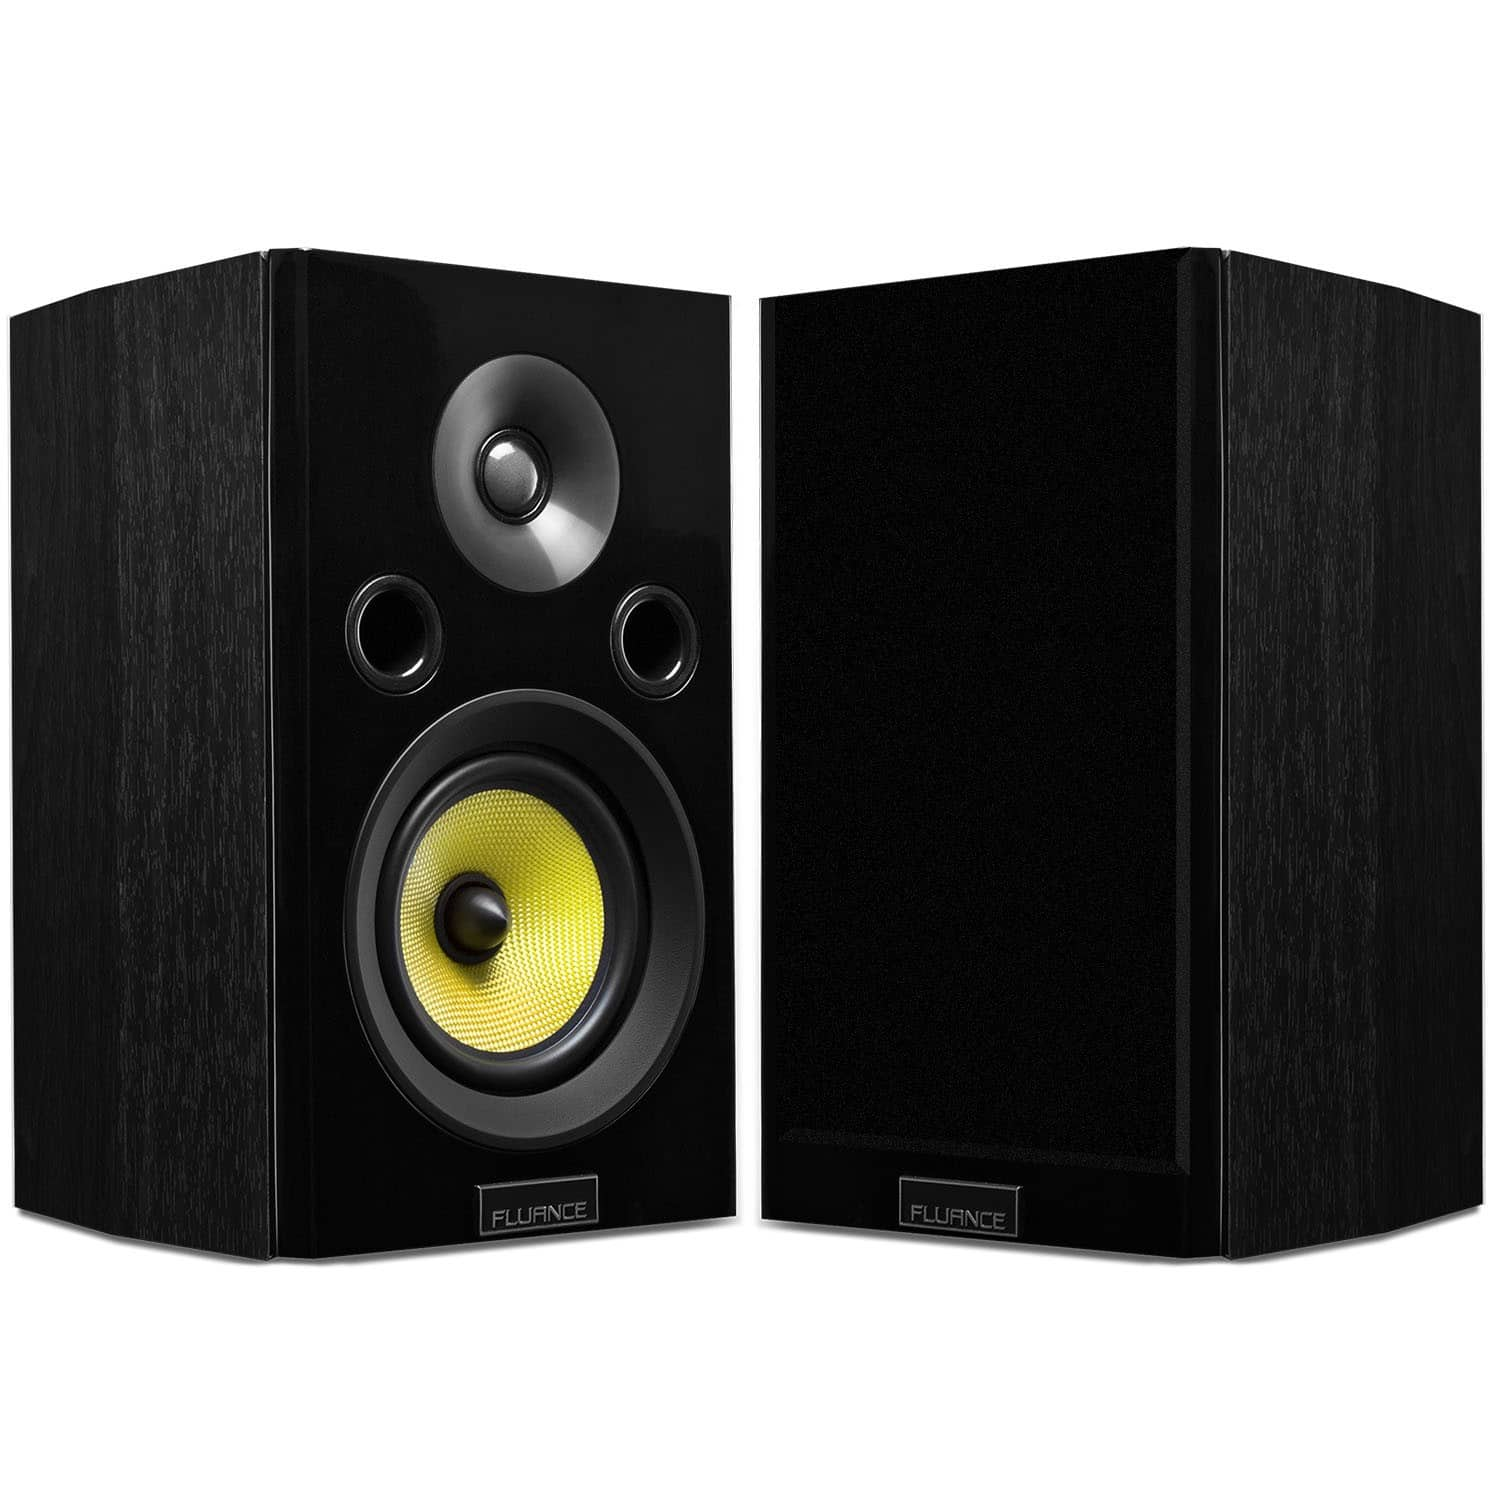 Fluance Signature Series HiFi Two-way Bookshelf speakers. 50% off plus additional $10 off and free shipping.